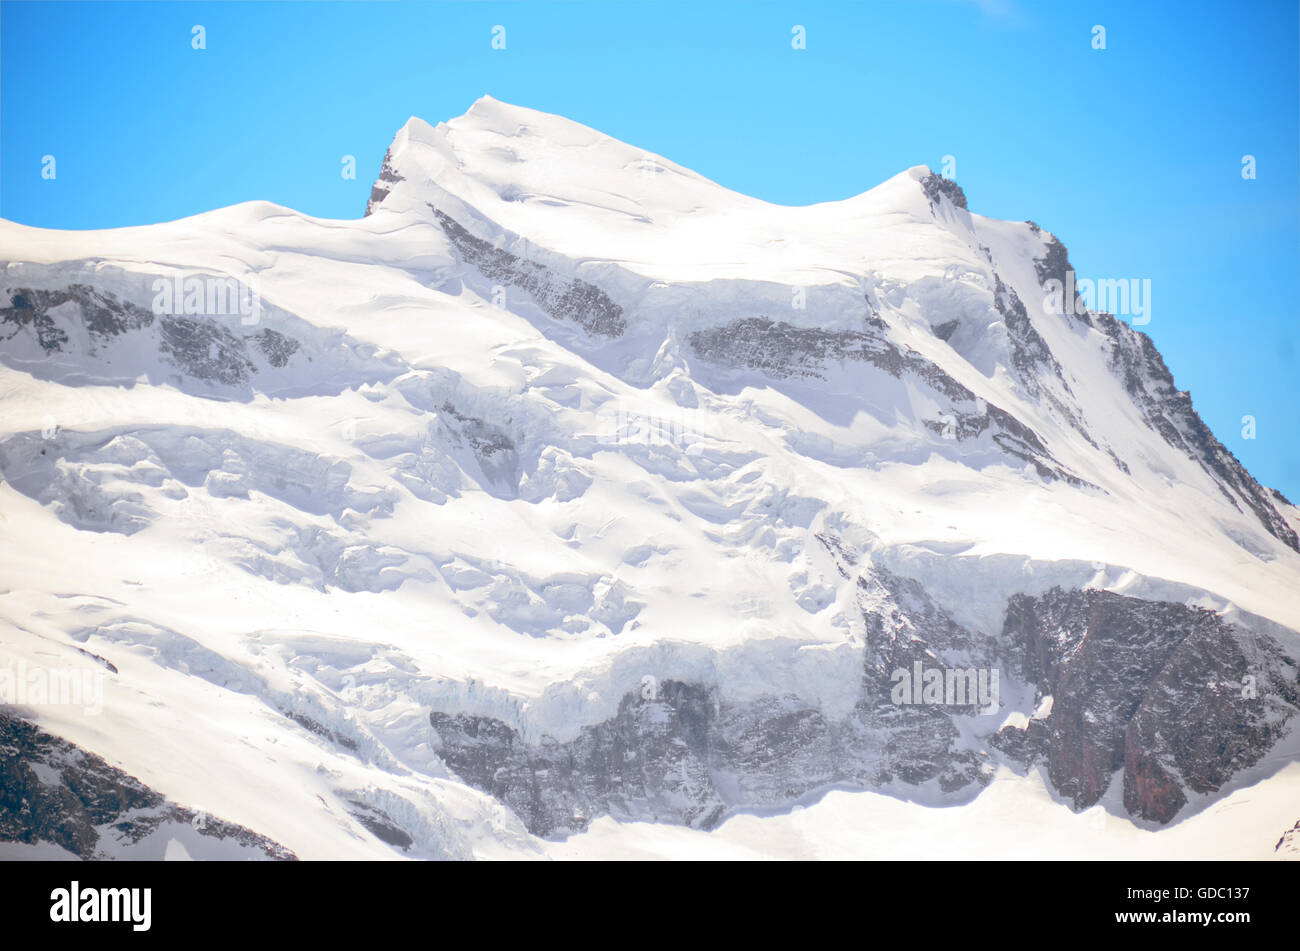 Grand Combin in Valais - Stock Image